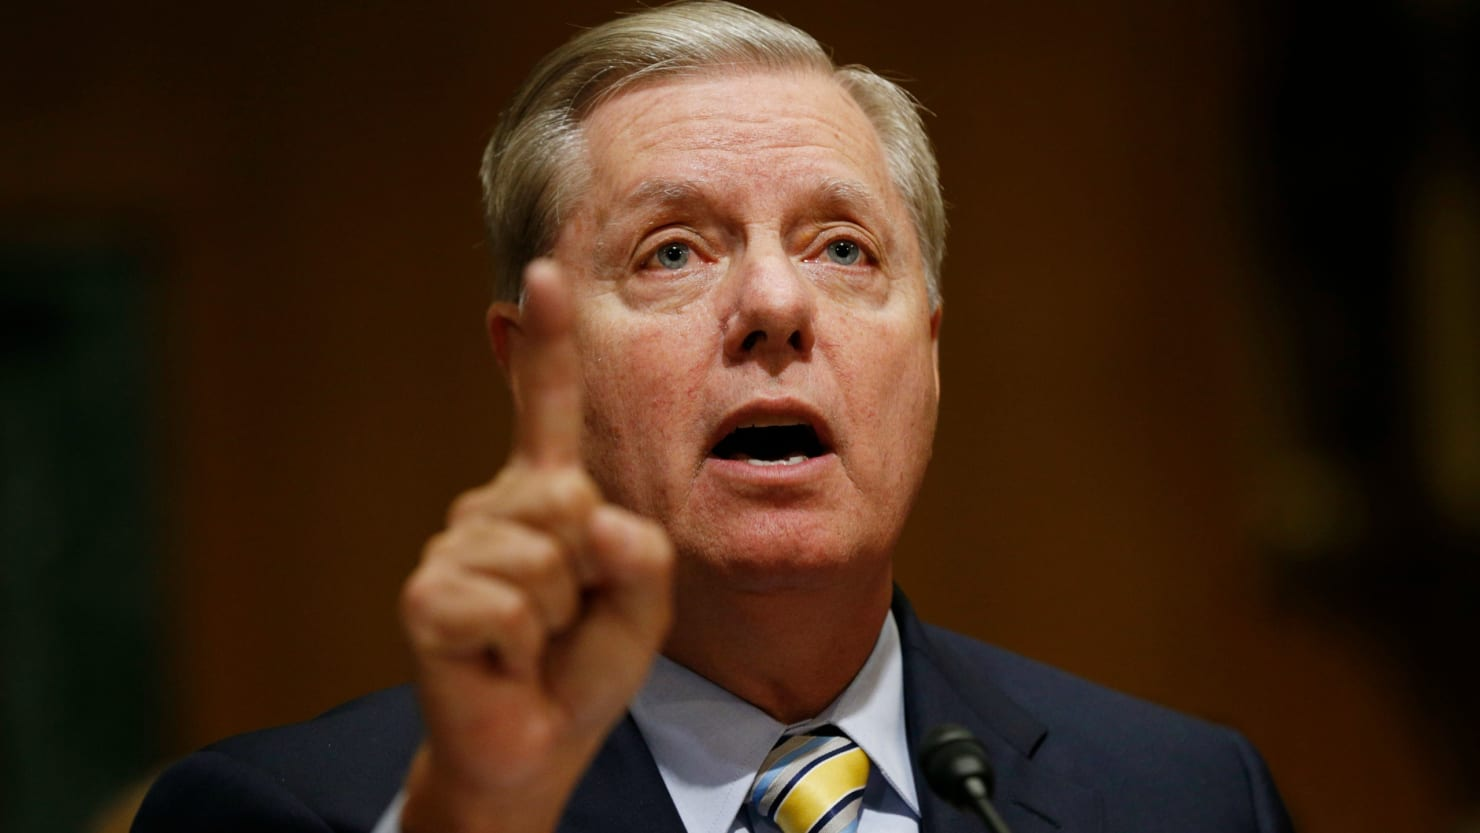 Graham defends McCain's right to vote any way he wants